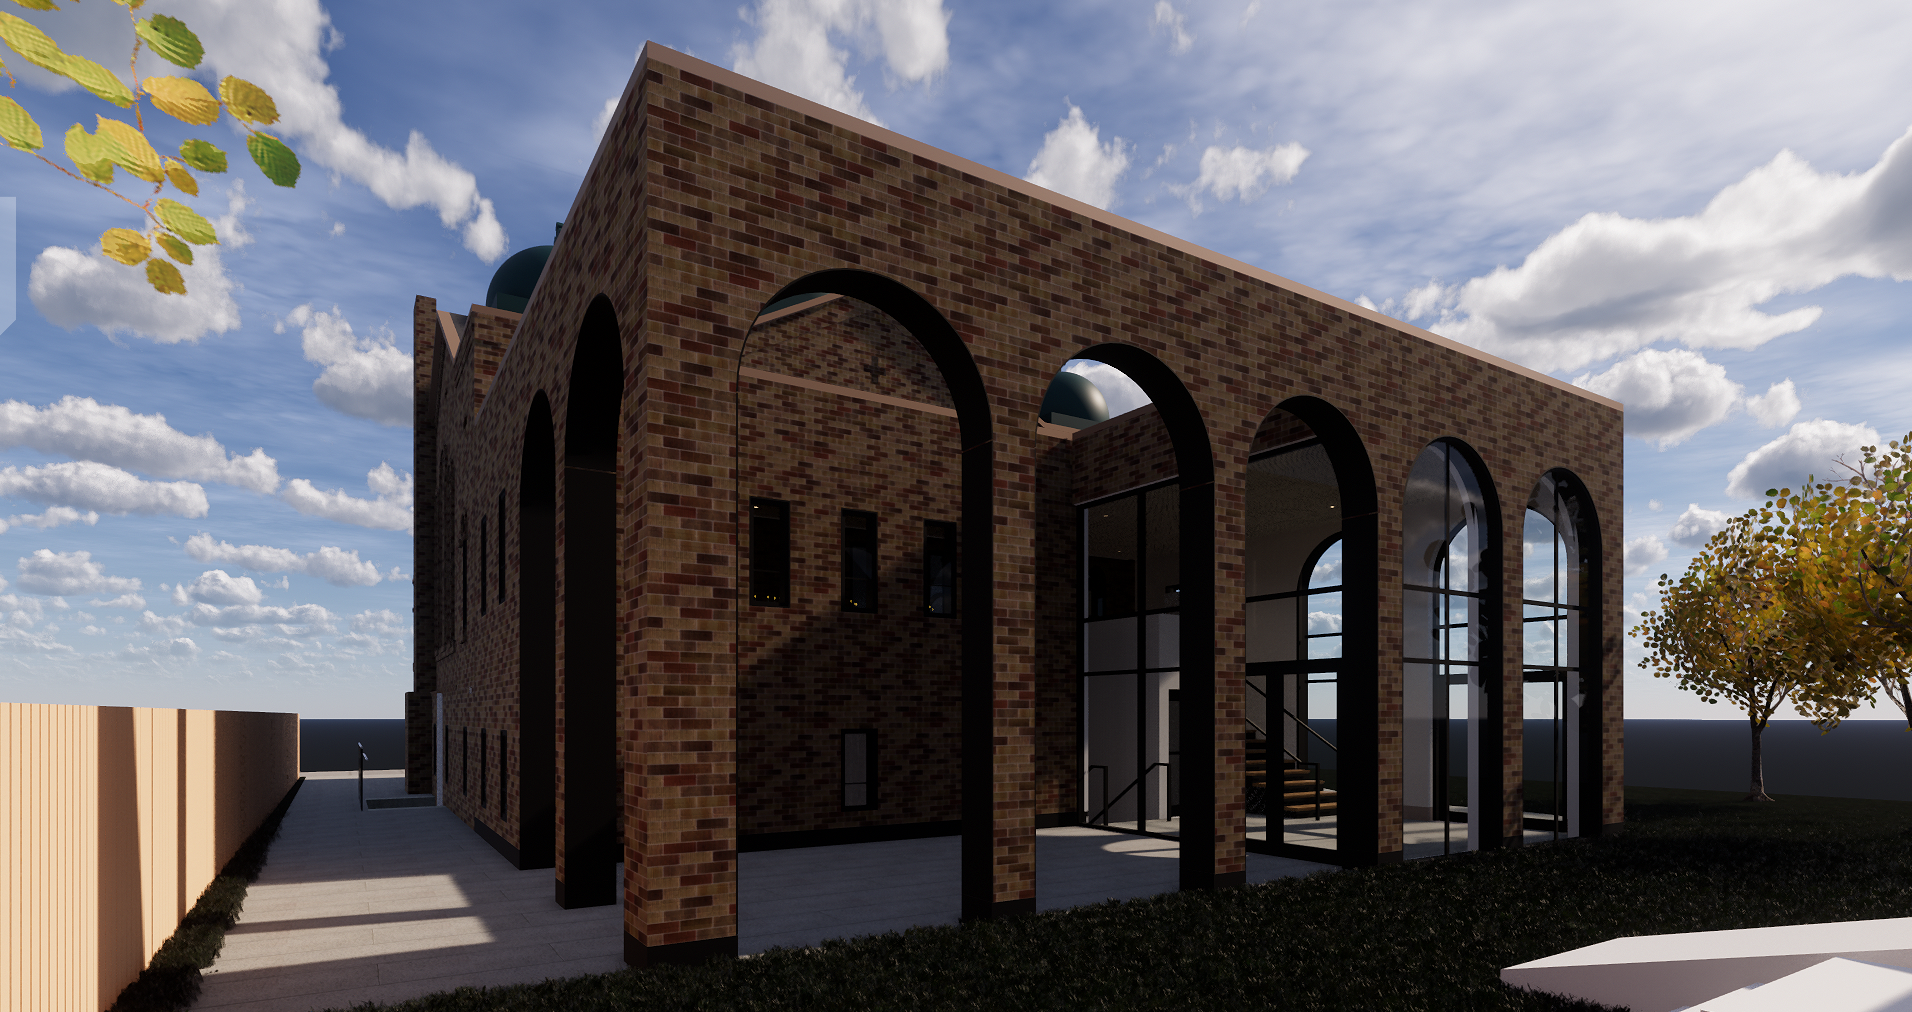 2018.06_28-ST. GEORGE - EXTERIOR.PNG